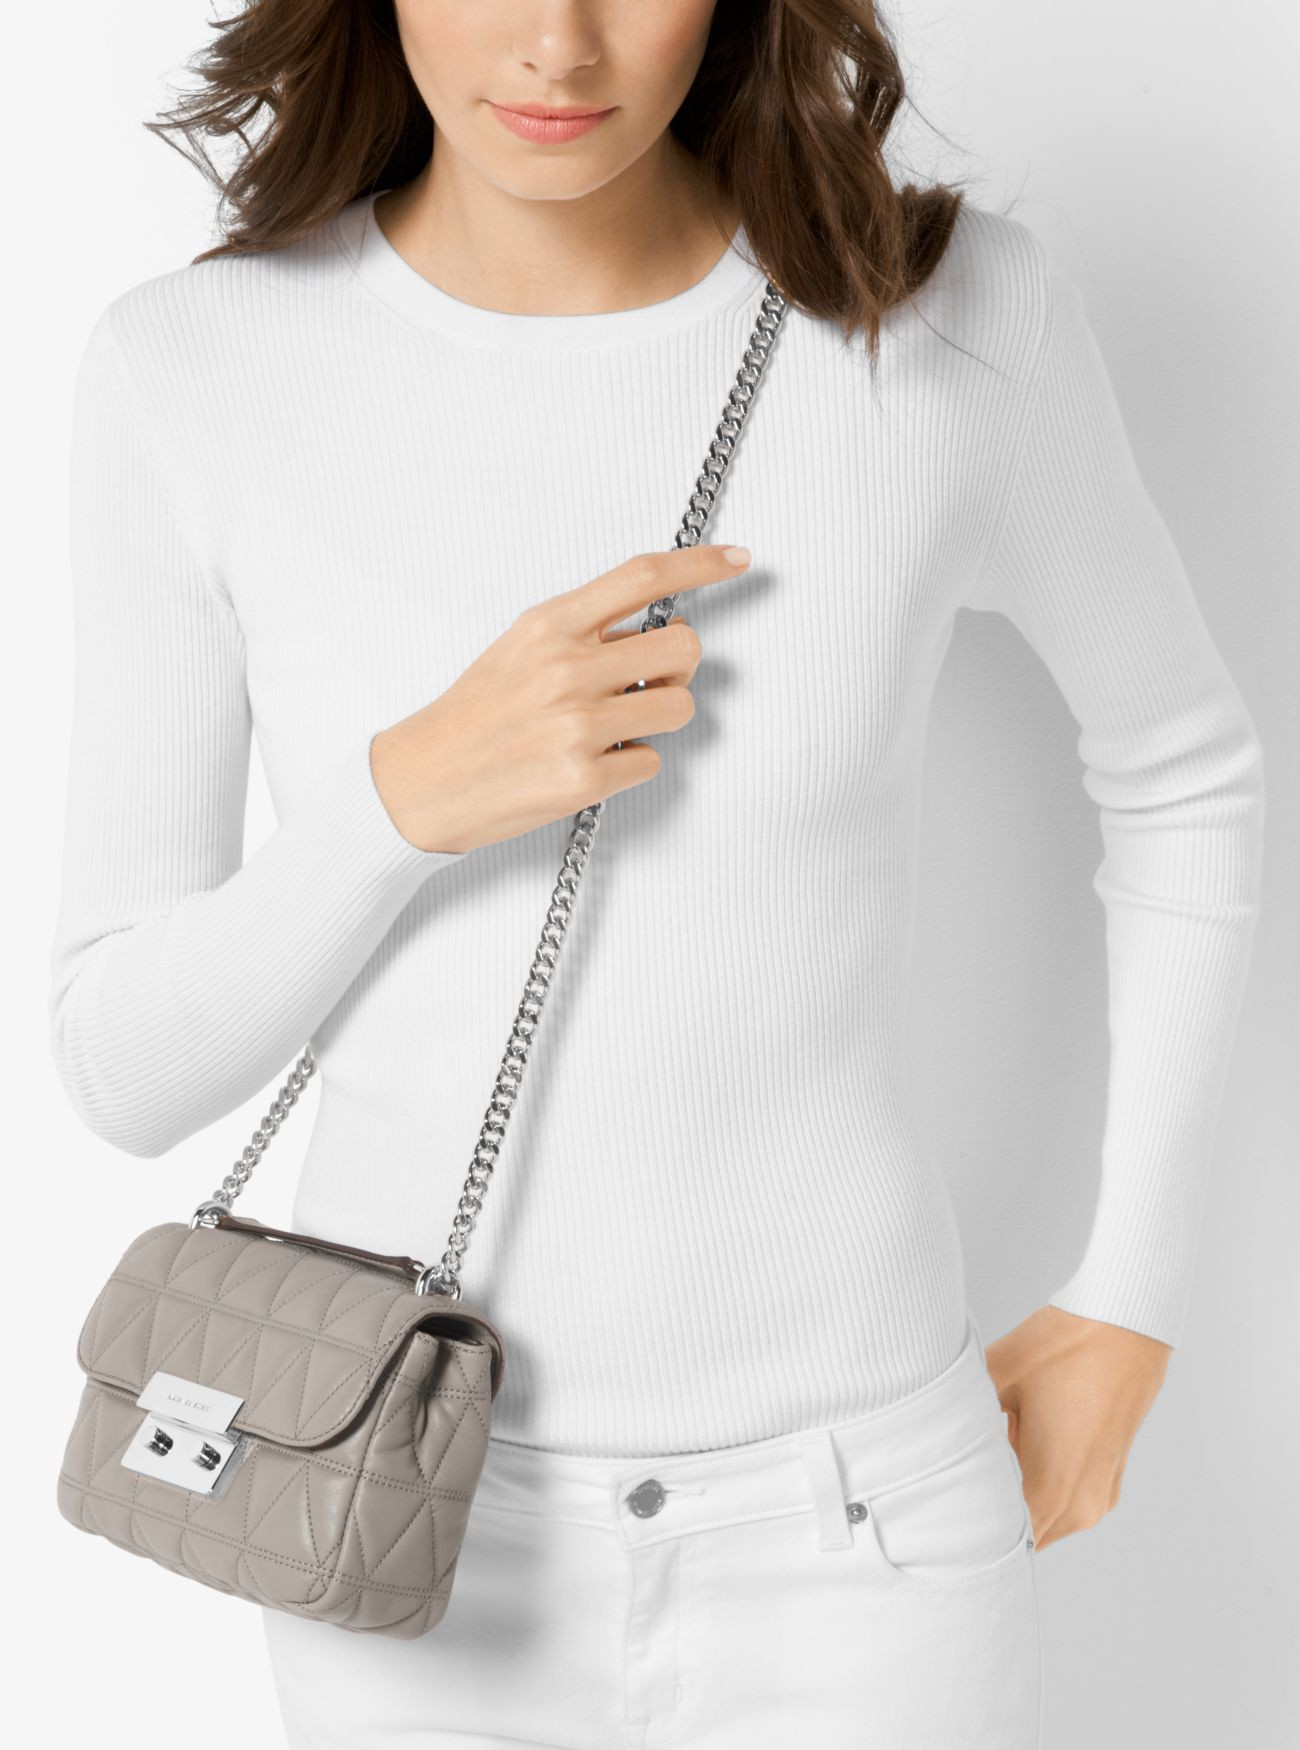 29b6181defa3 Michael Kors Sloan Small Quilted-Leather Crossbody - Pearl Grey ...